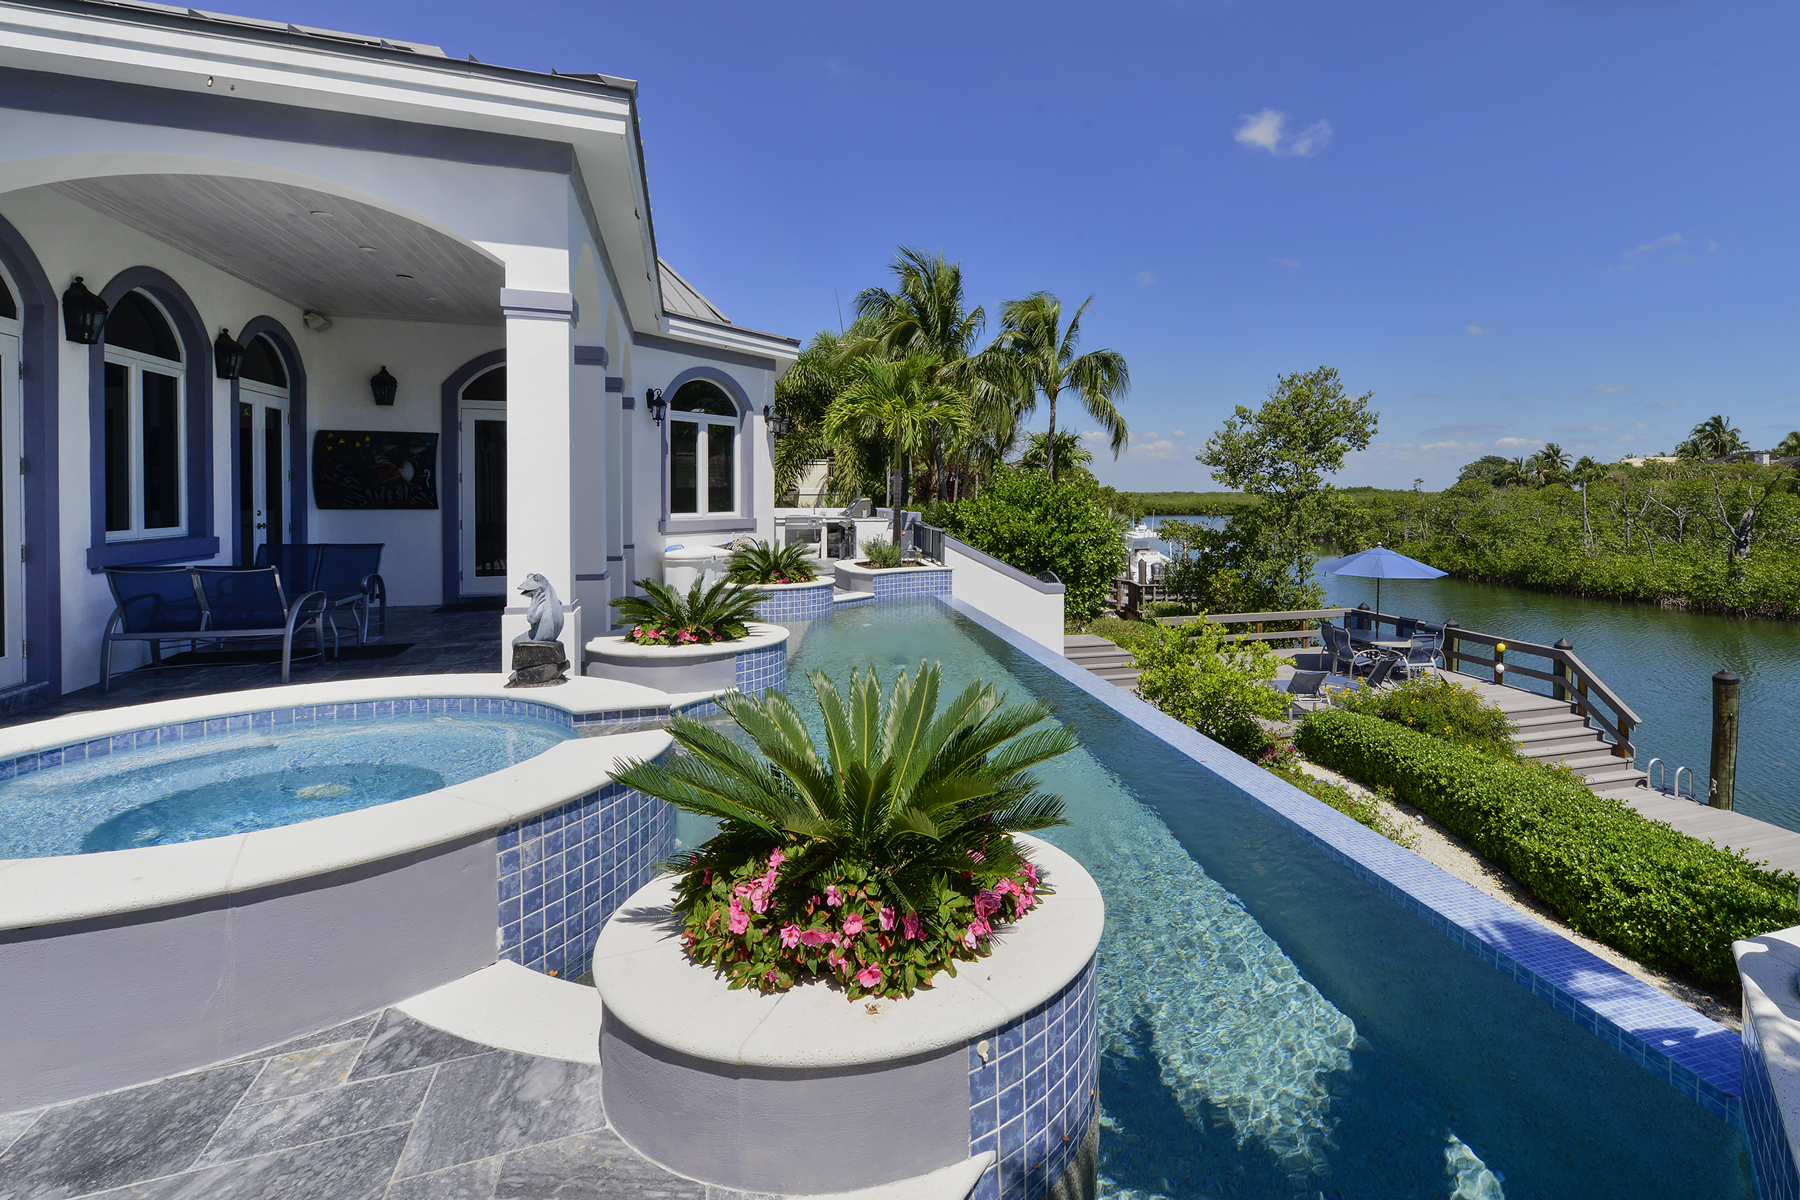 Casa Unifamiliar por un Venta en Custom Built Waterfront Home at Ocean Reef 17 North Pelican Drive Ocean Reef Community, Key Largo, Florida, 33037 Estados Unidos